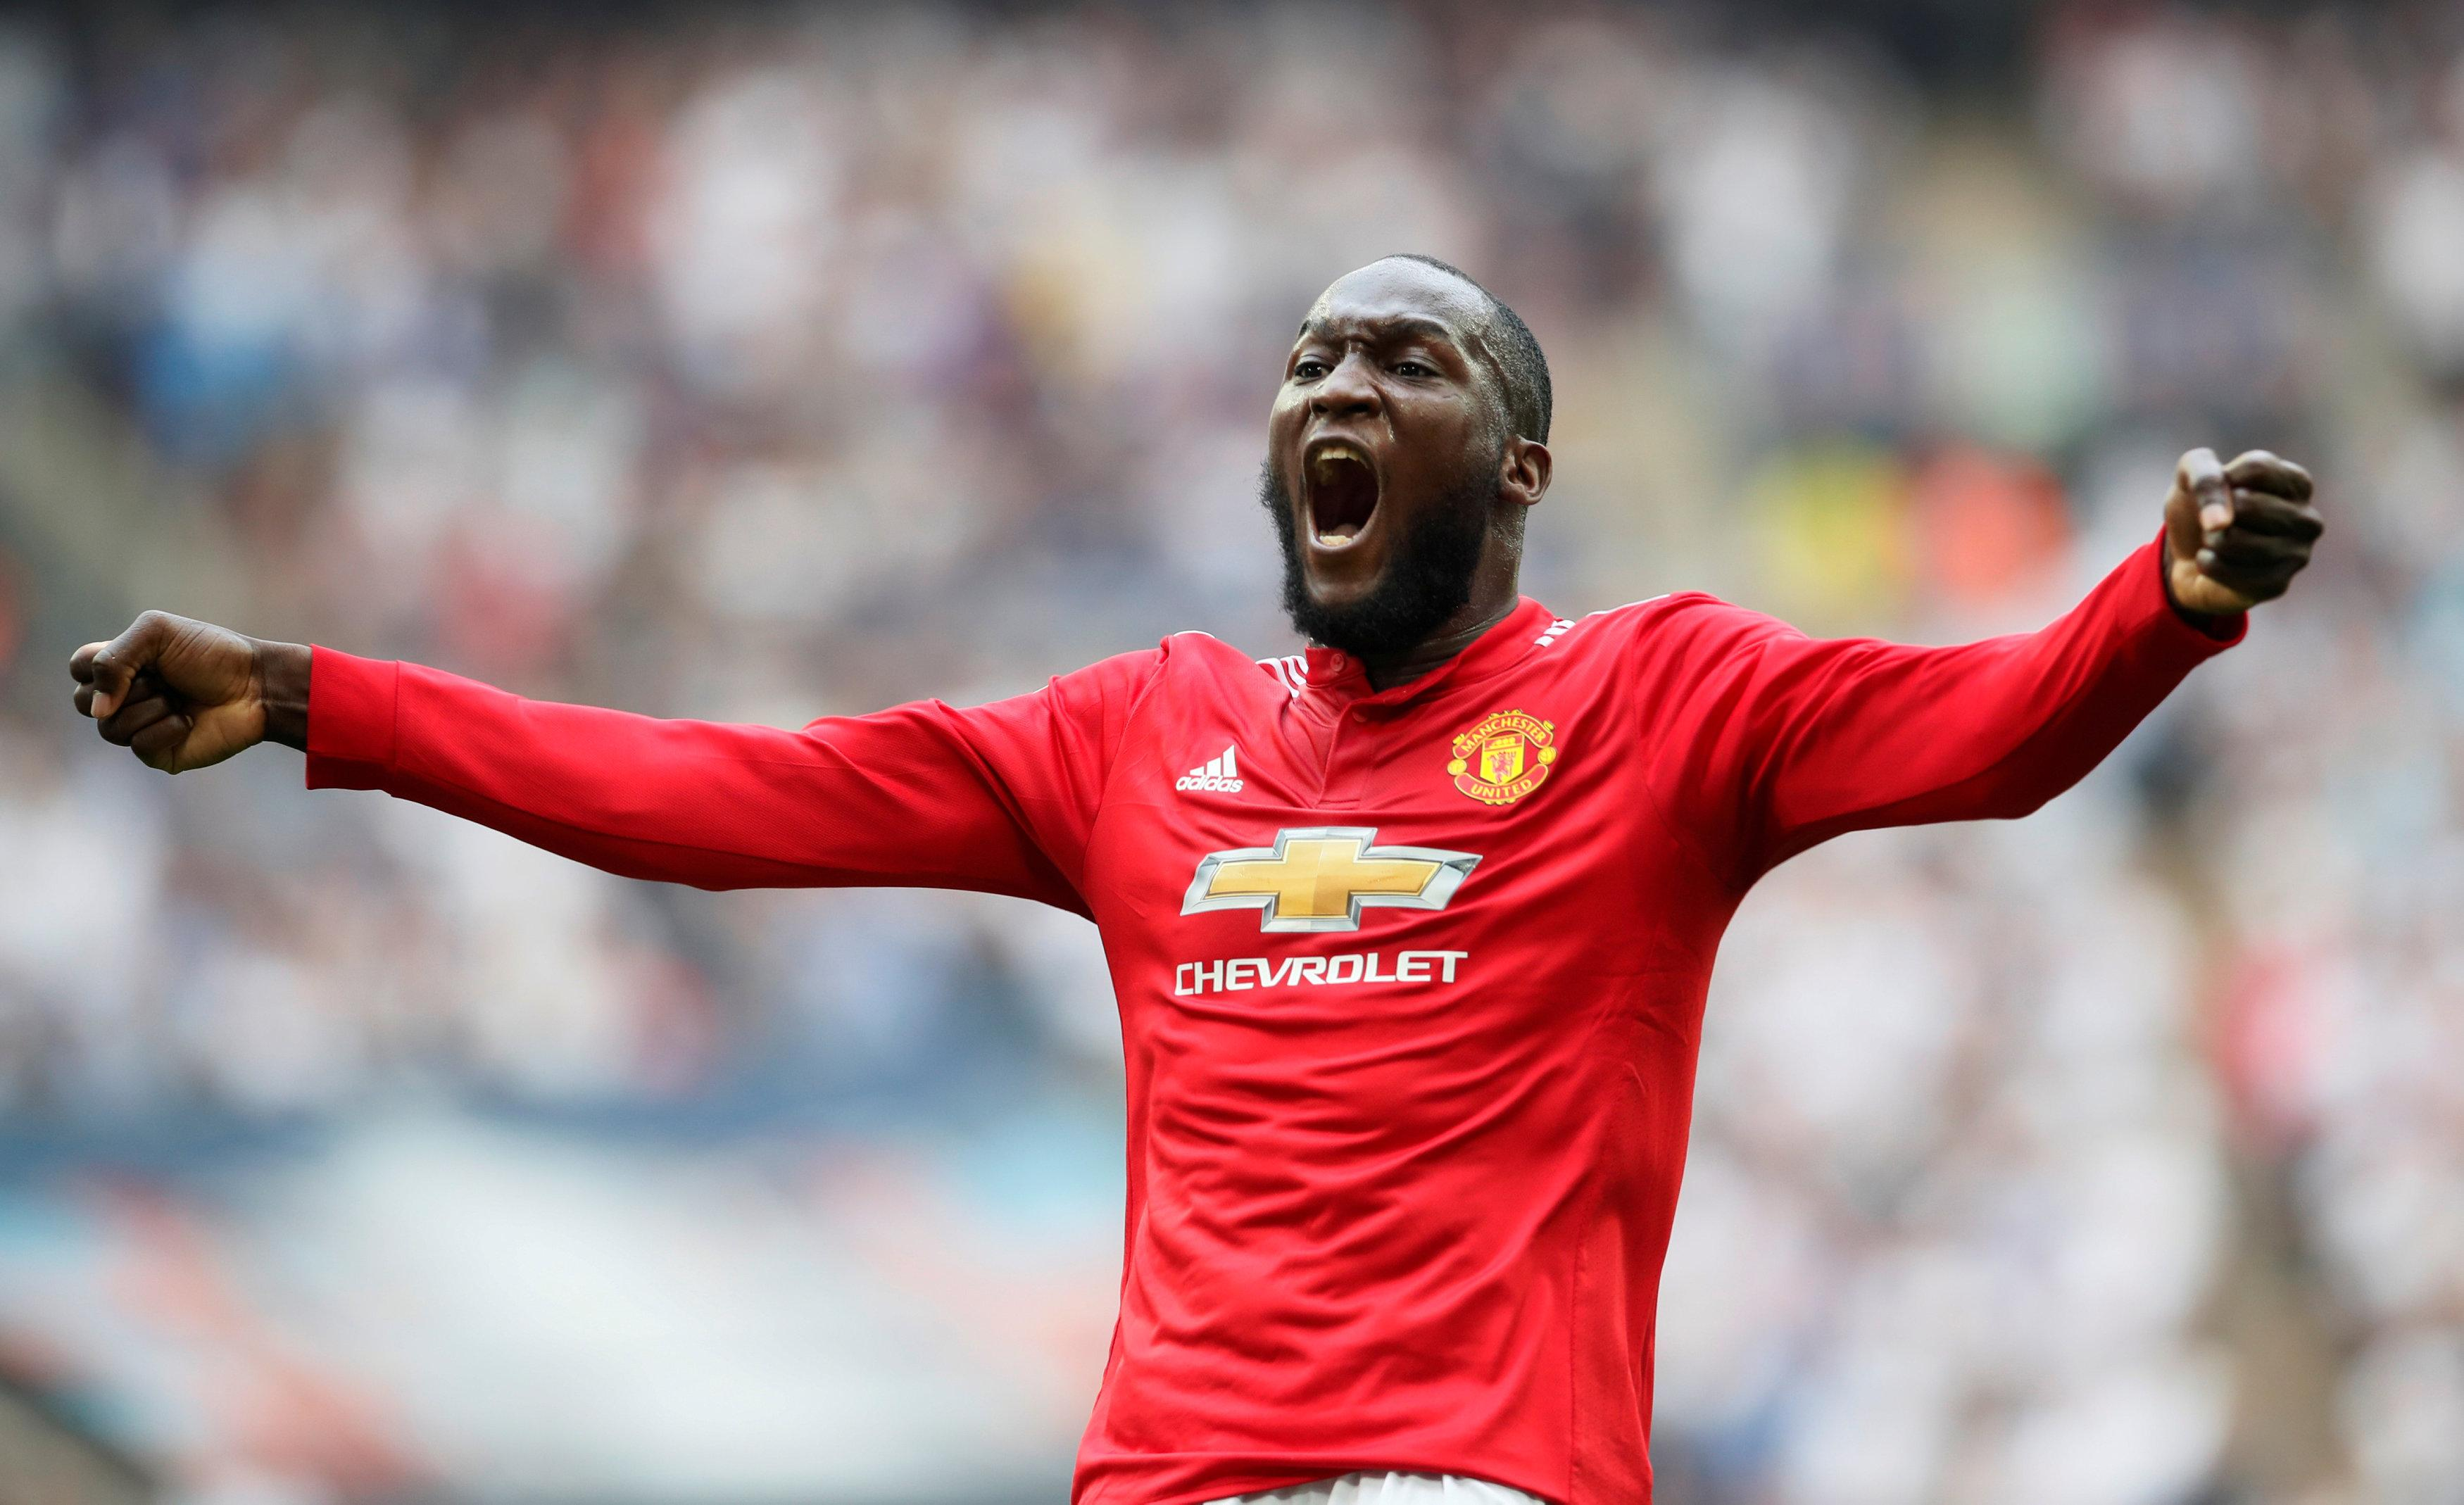 Romelu Lukaku has been heavily criticised this season but his numbers are impressive